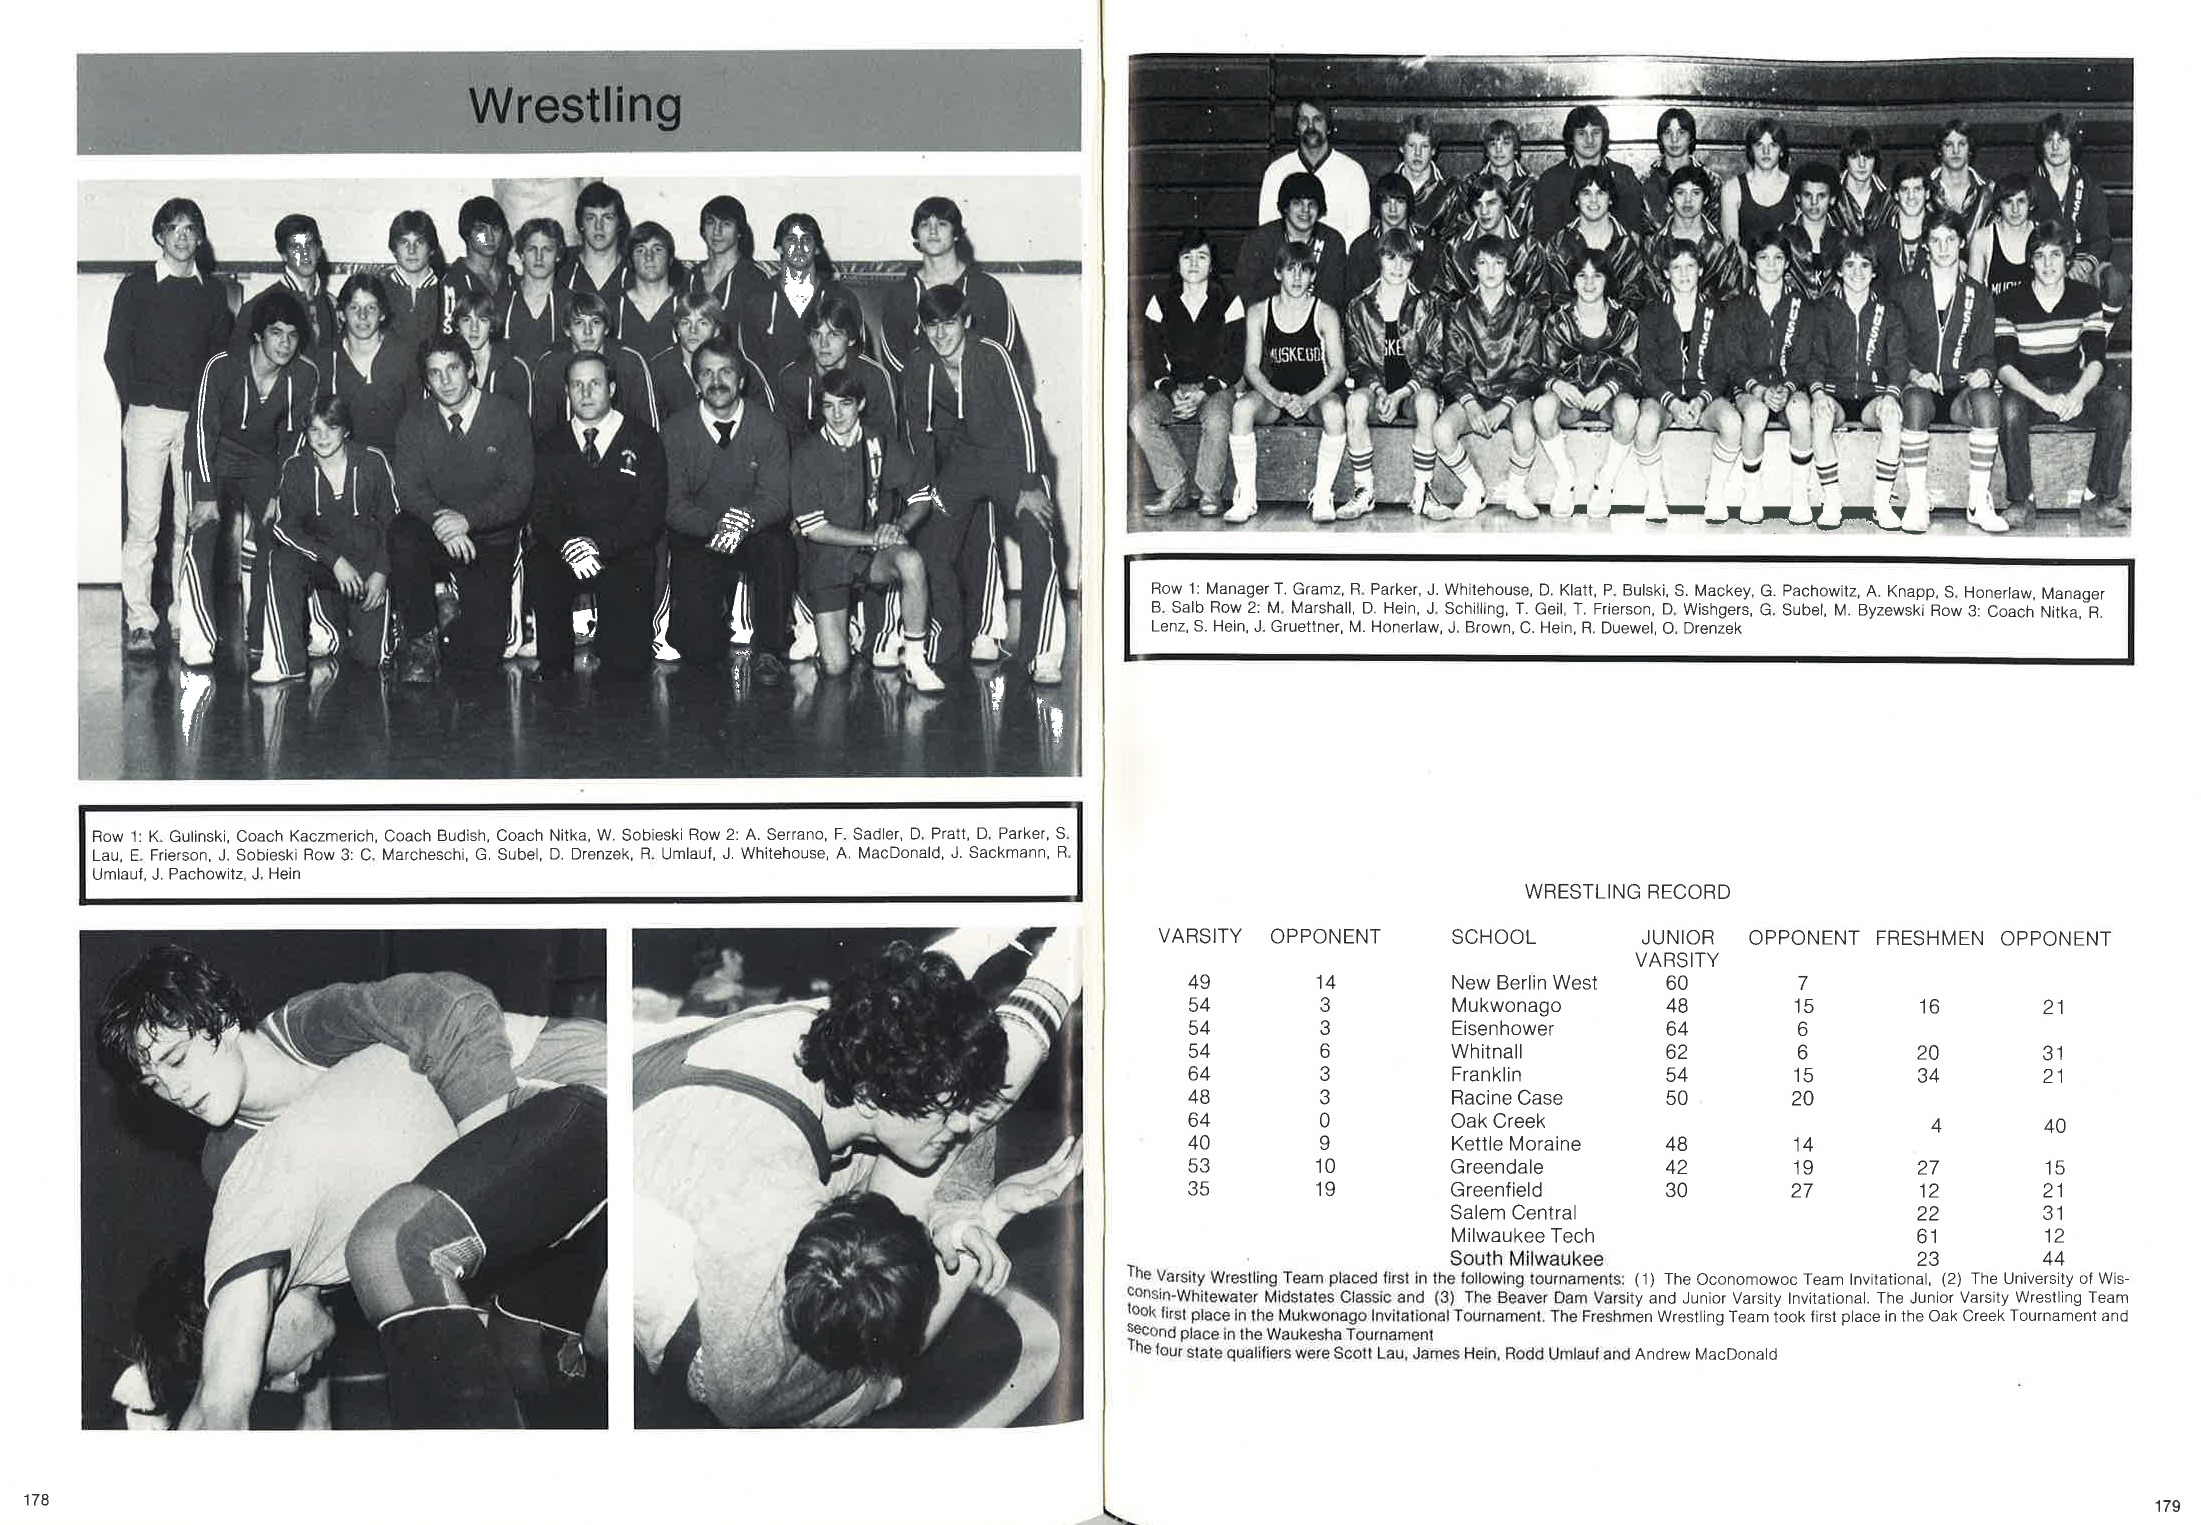 1981_Yearbook_178.jpg